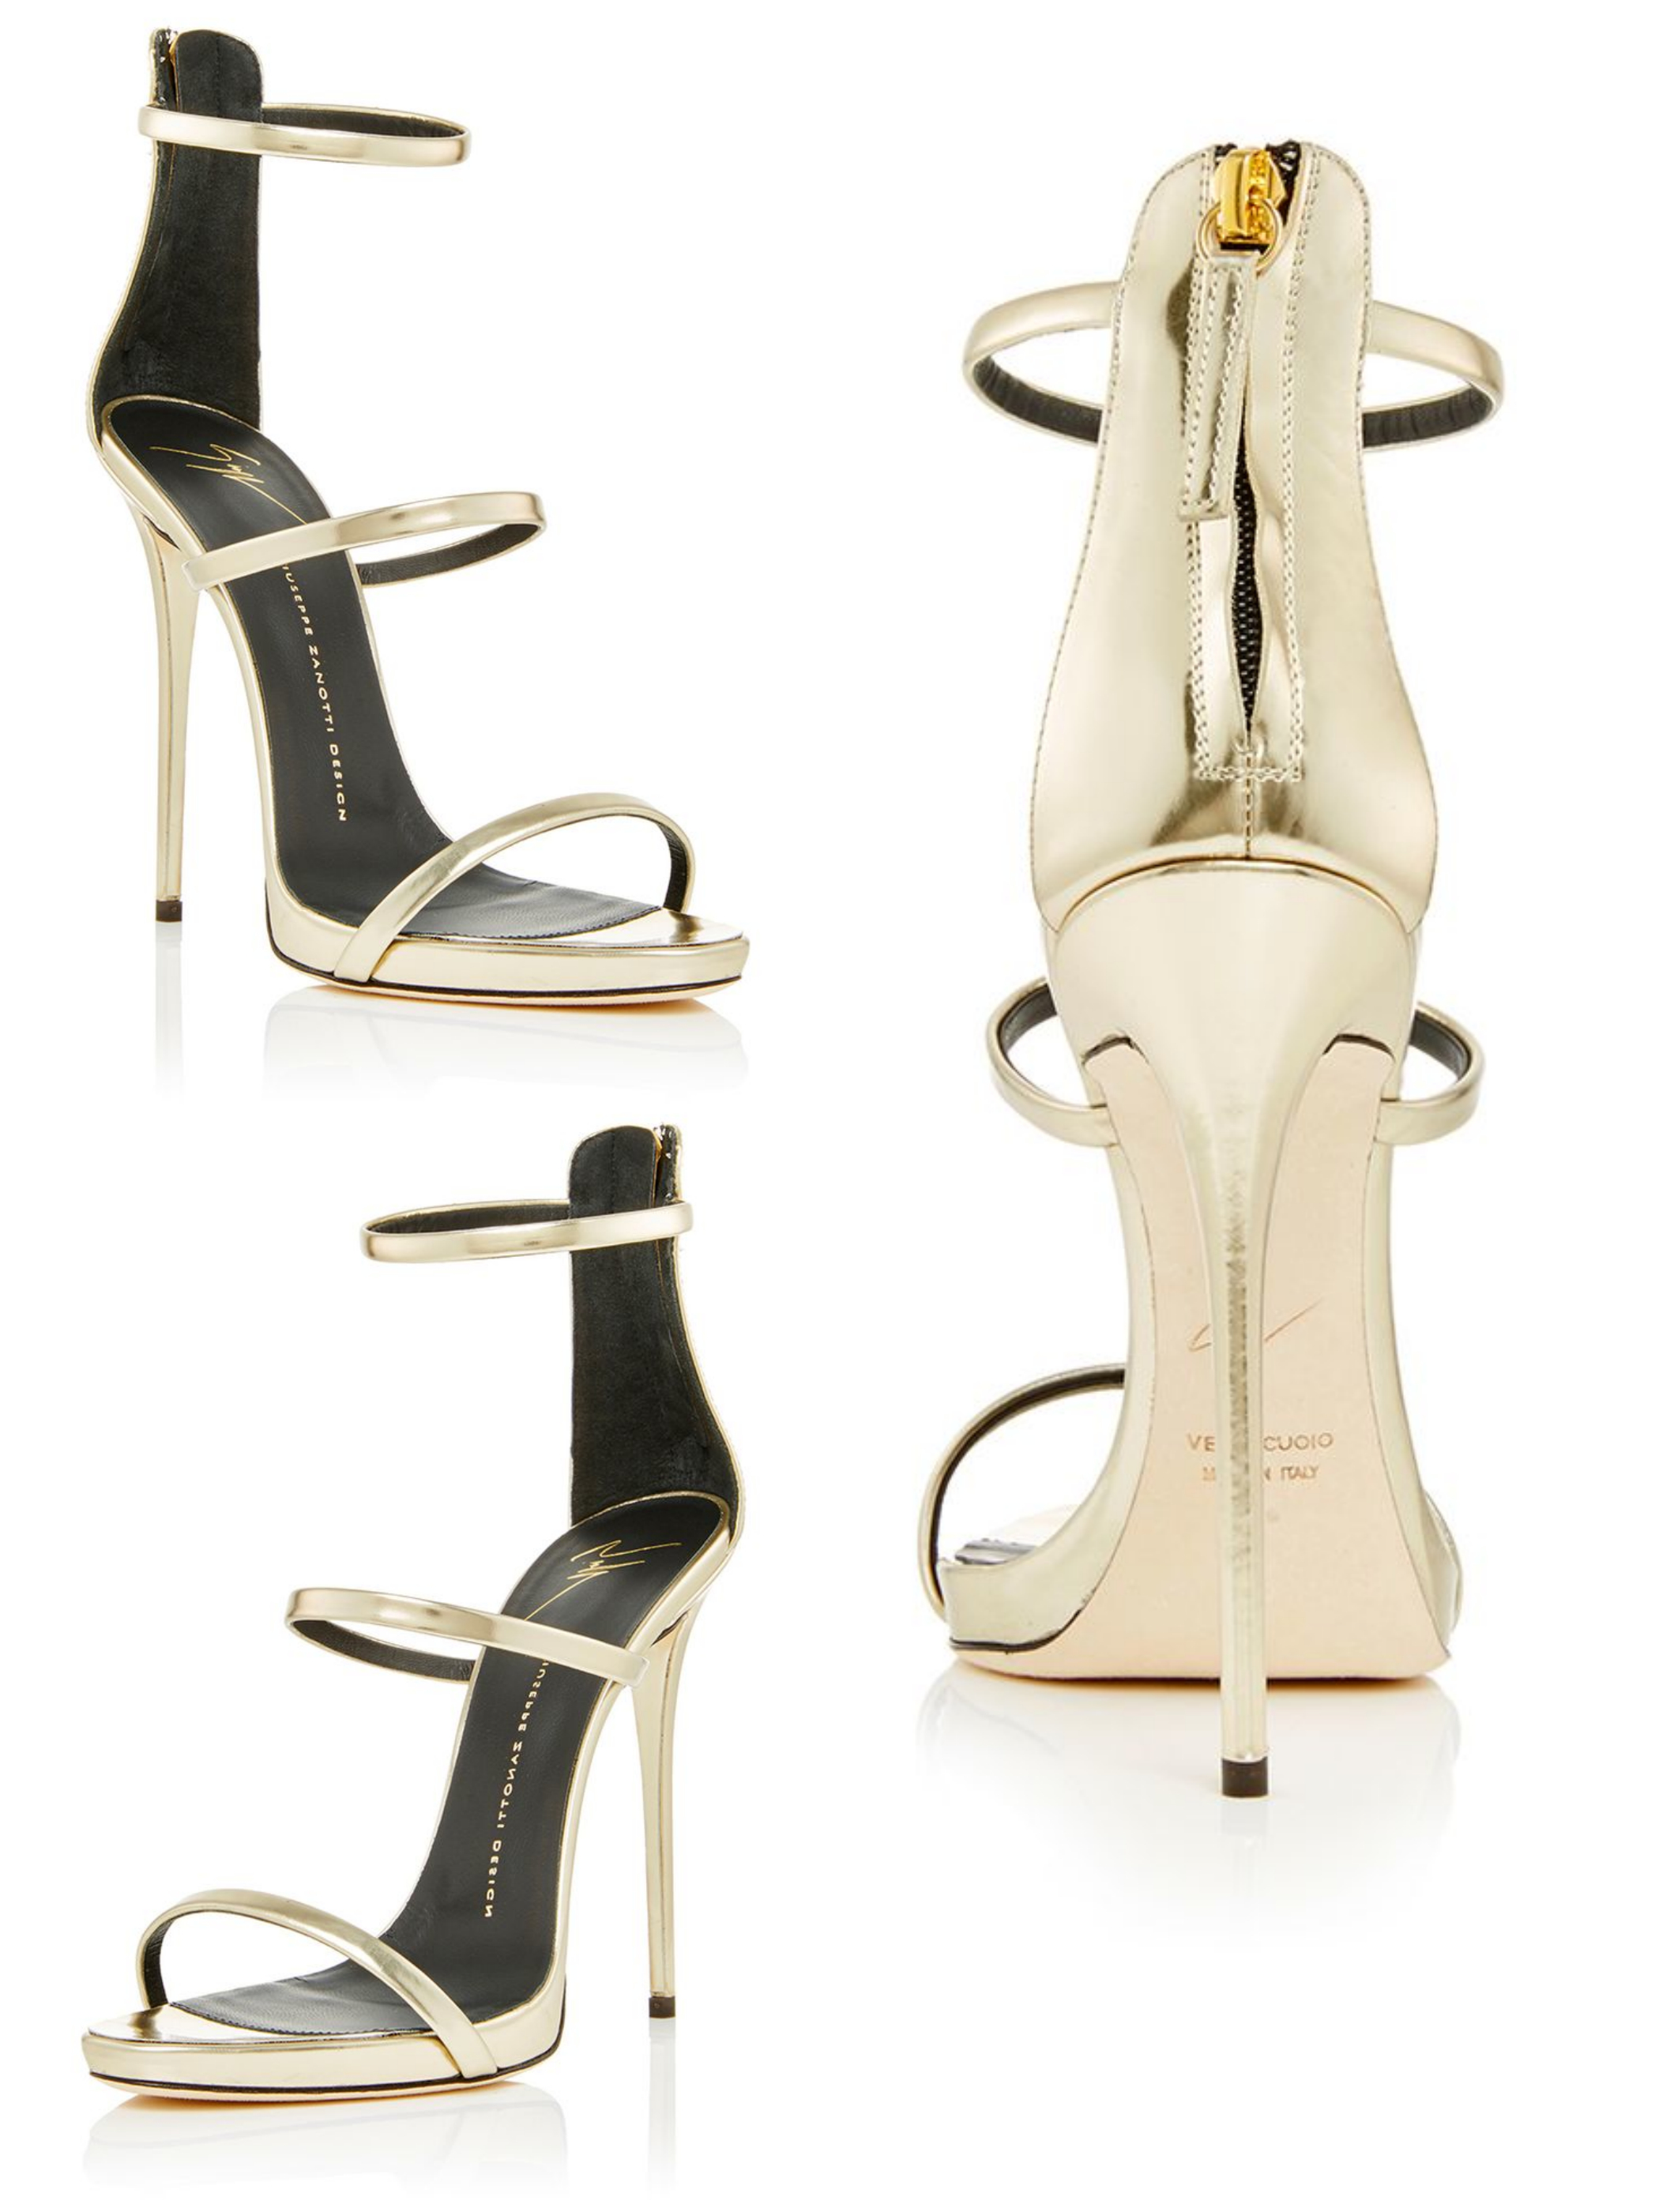 Giuseppe Zanotti, Shooting Platinum Three Strap Sandals